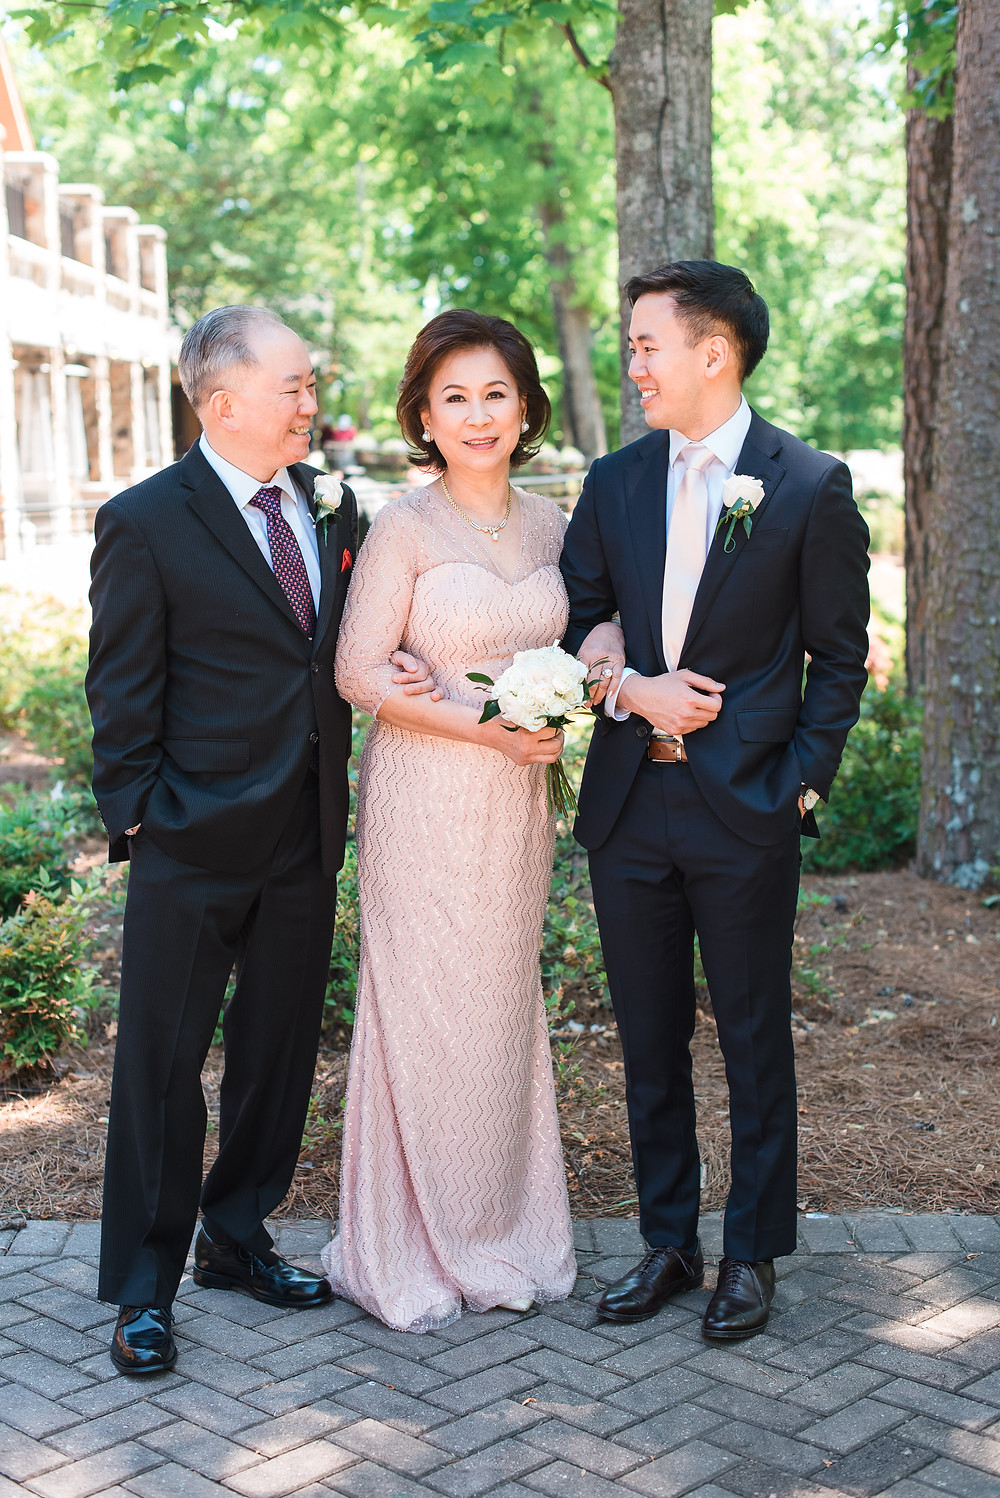 family photos at the country club of the south wedding